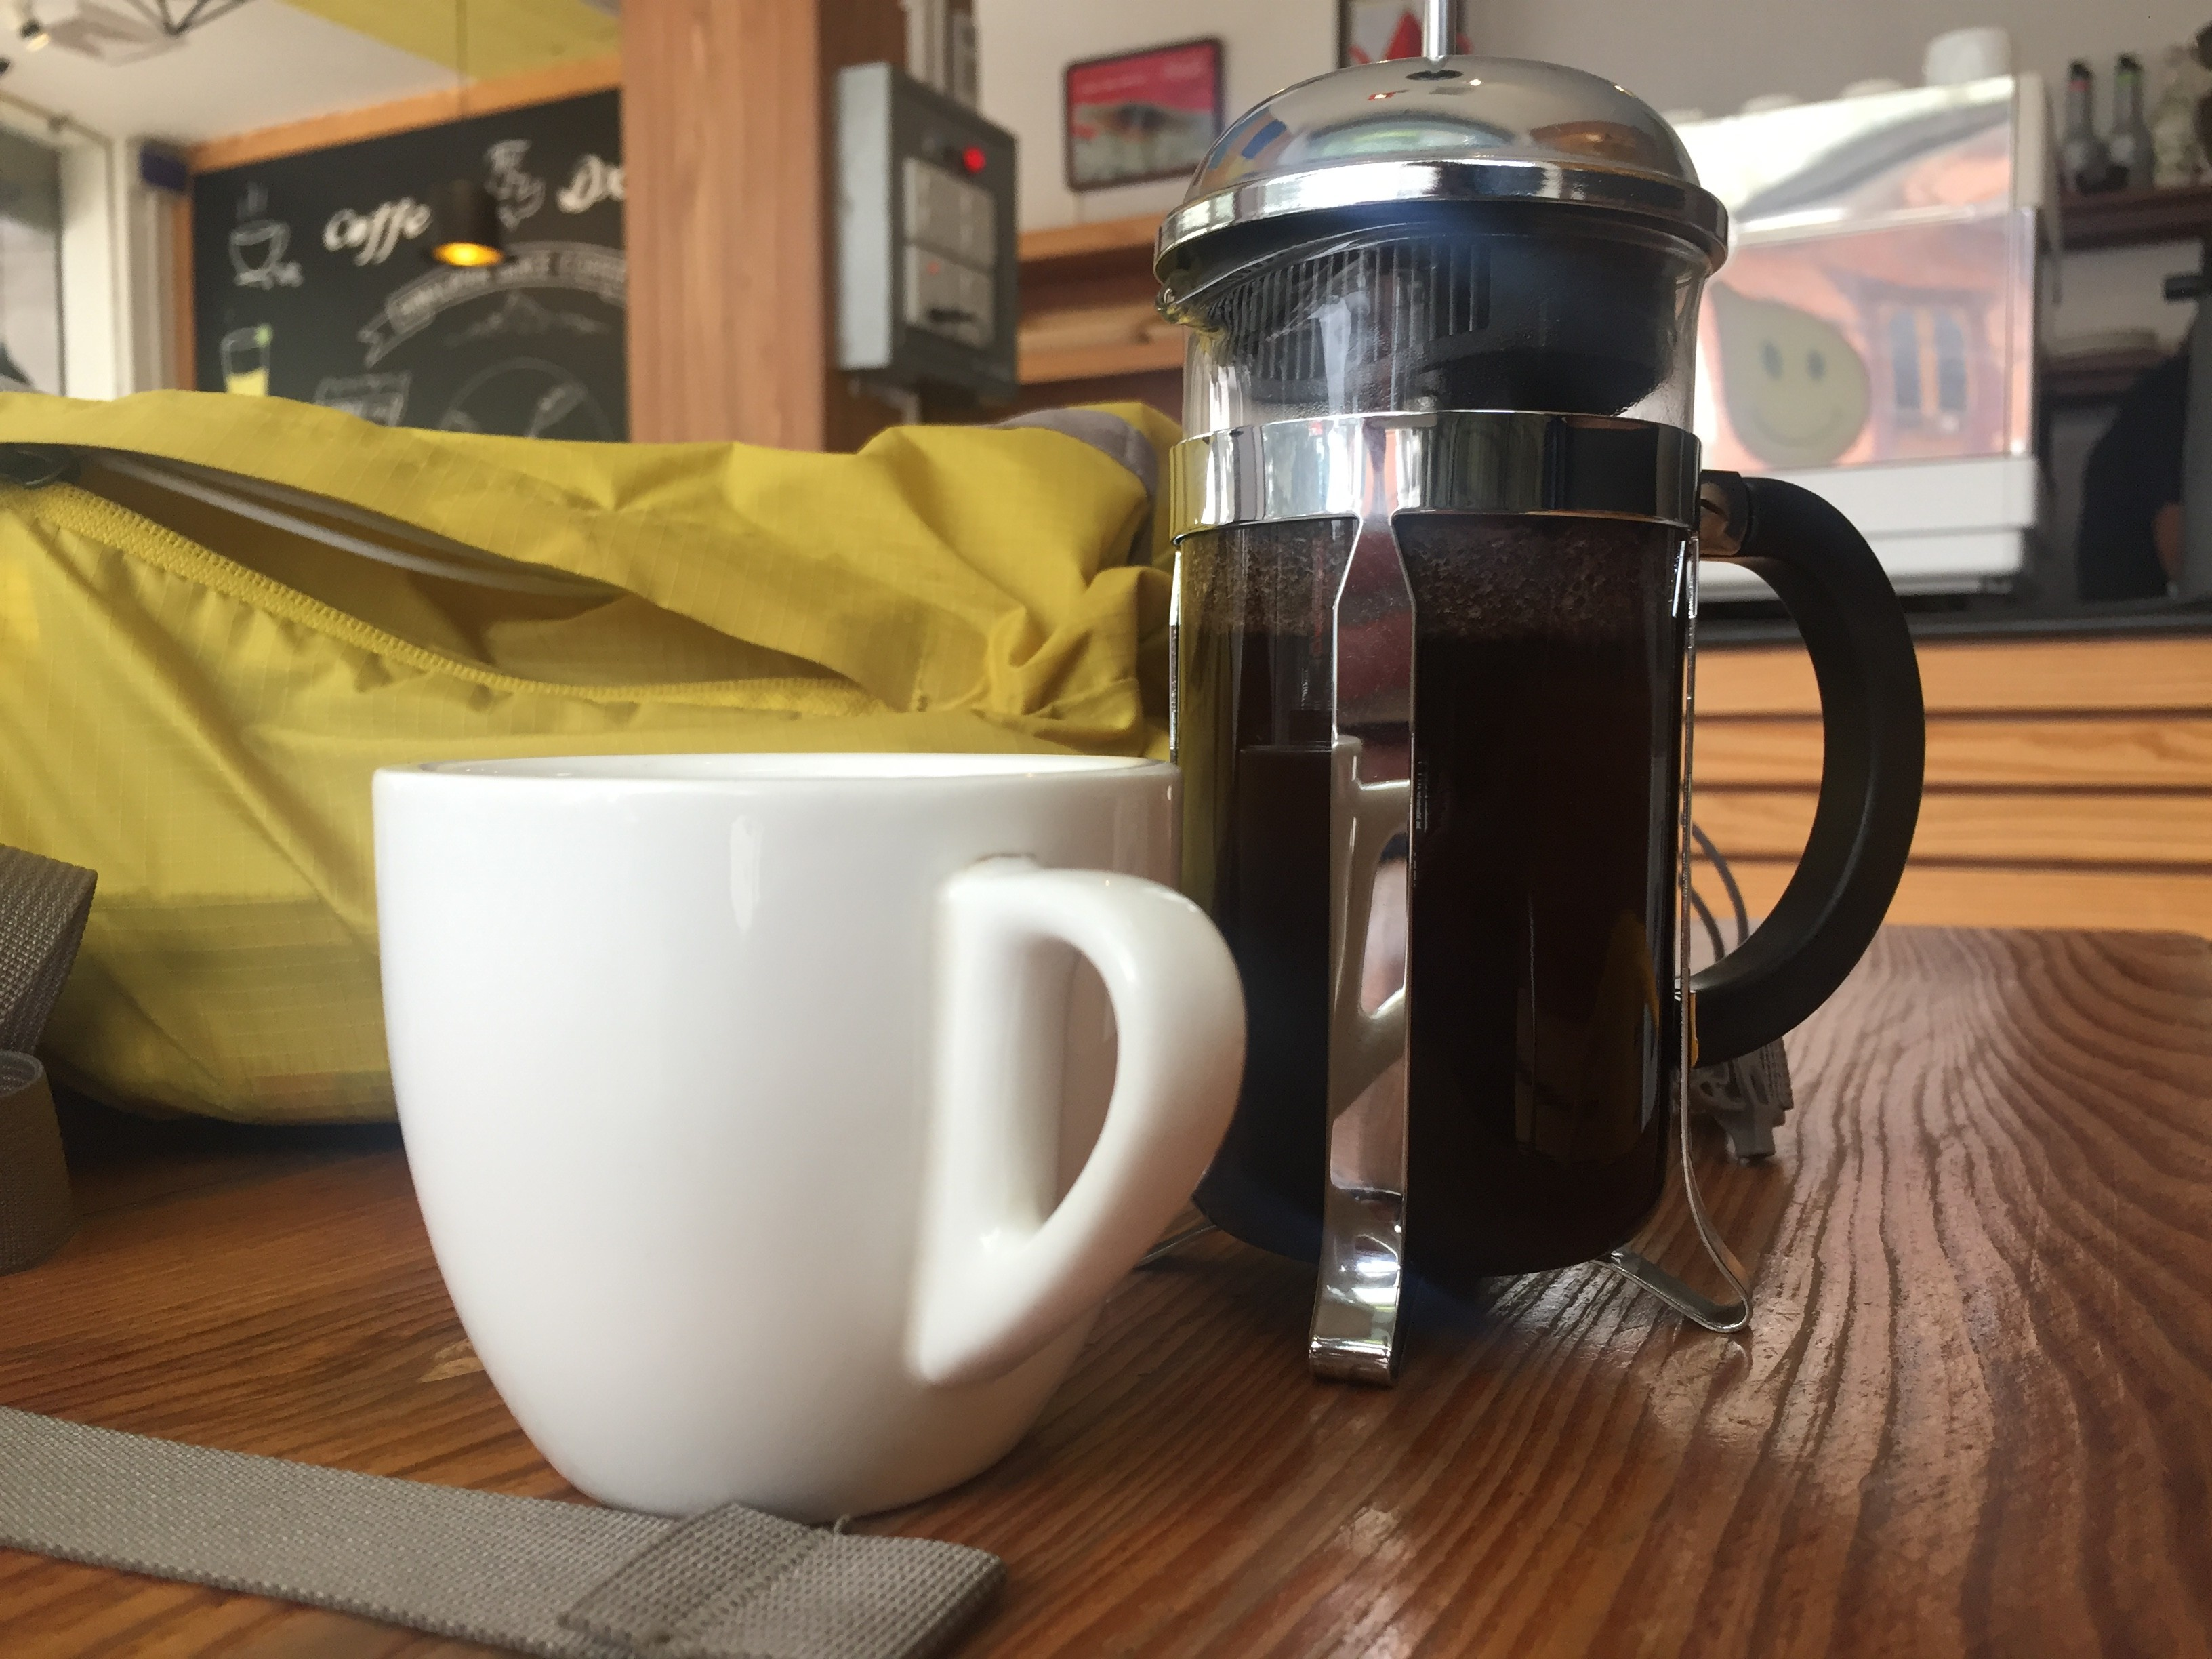 For my free cup, I always choose a french press.